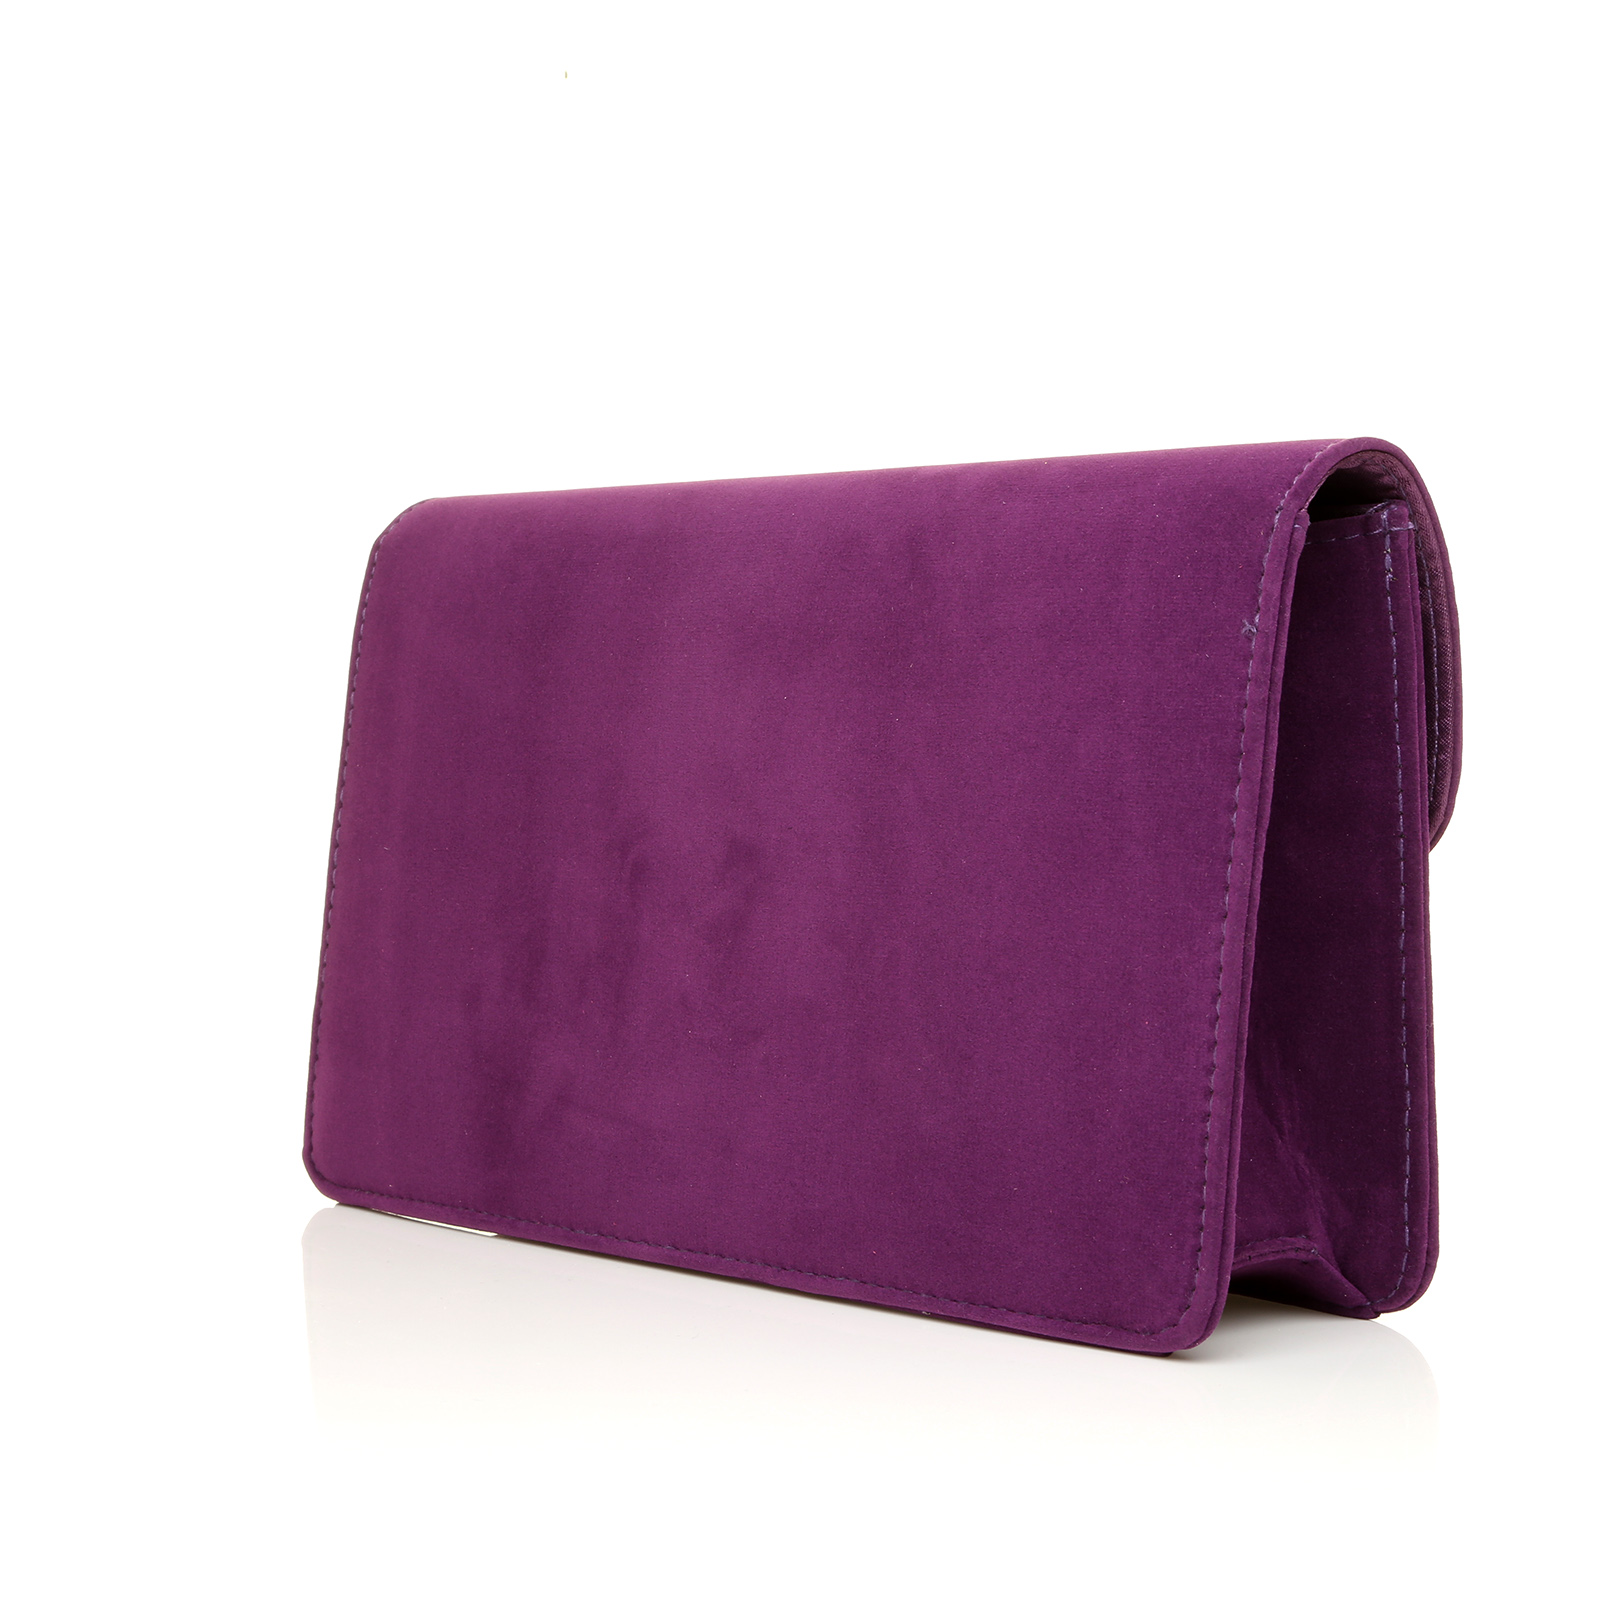 Large Clutch Purses. Store availability. Search your store by entering zip code or city, state. Go. Sort. Women Handbag Shoulder Bags Envelope Clutch Crossbody Satchel Messenger. Product Image. Price $ 4. Canvas Fanny Pack Travel Clutch Waist Bag Large Purse Adjustable Strap Tote Bag. Reduced Price. Product Image.